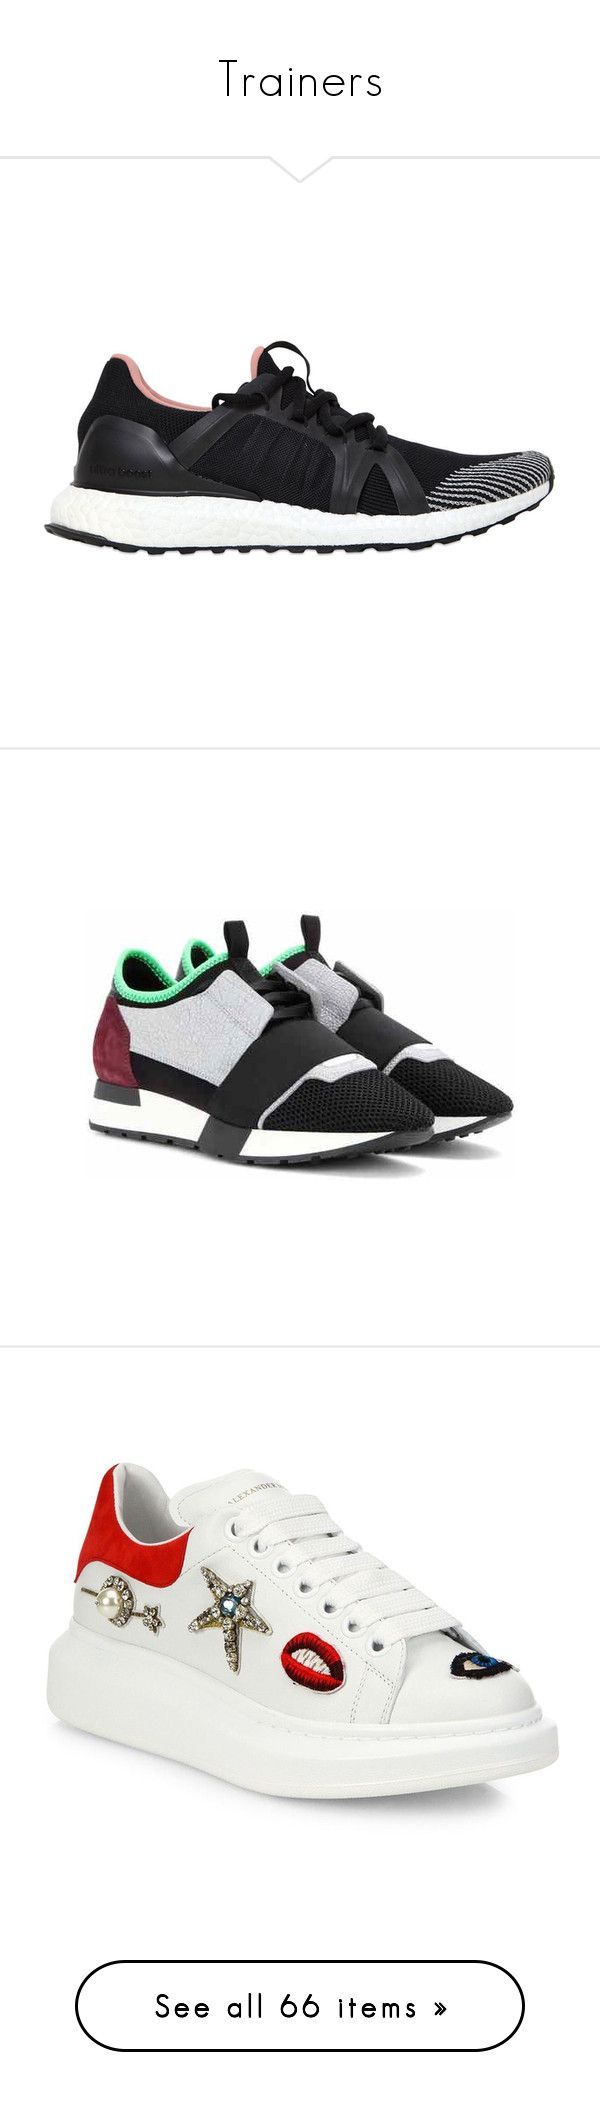 """Trainers"" by yihansong ❤ liked on Polyvore featuring men's fashion, men's shoes, men's sneakers, colorless, balenciaga mens sneakers, mens lace up shoes, balenciaga mens shoes, shoes, sneakers and black"